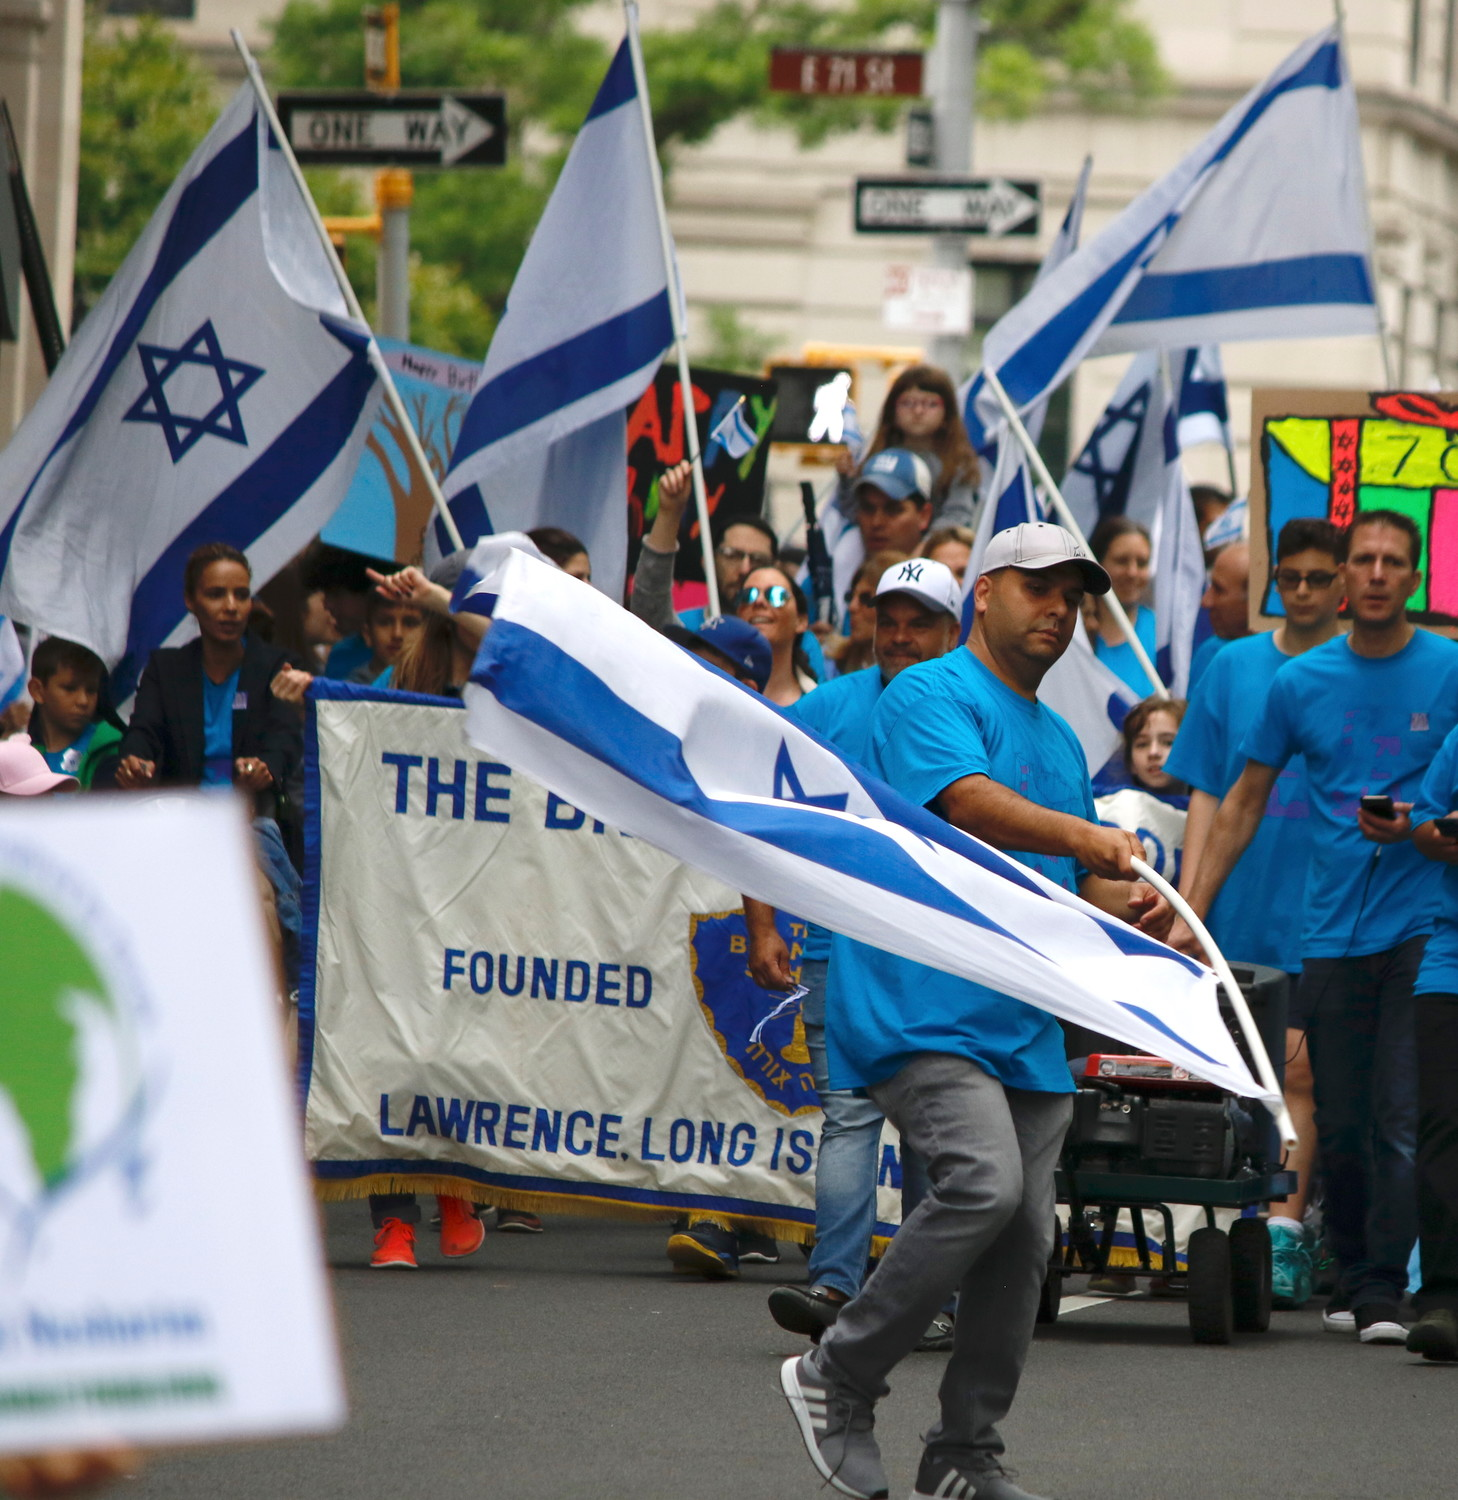 A member of the contingent from the Brandeis School in Lawrence waves Israel's flag.